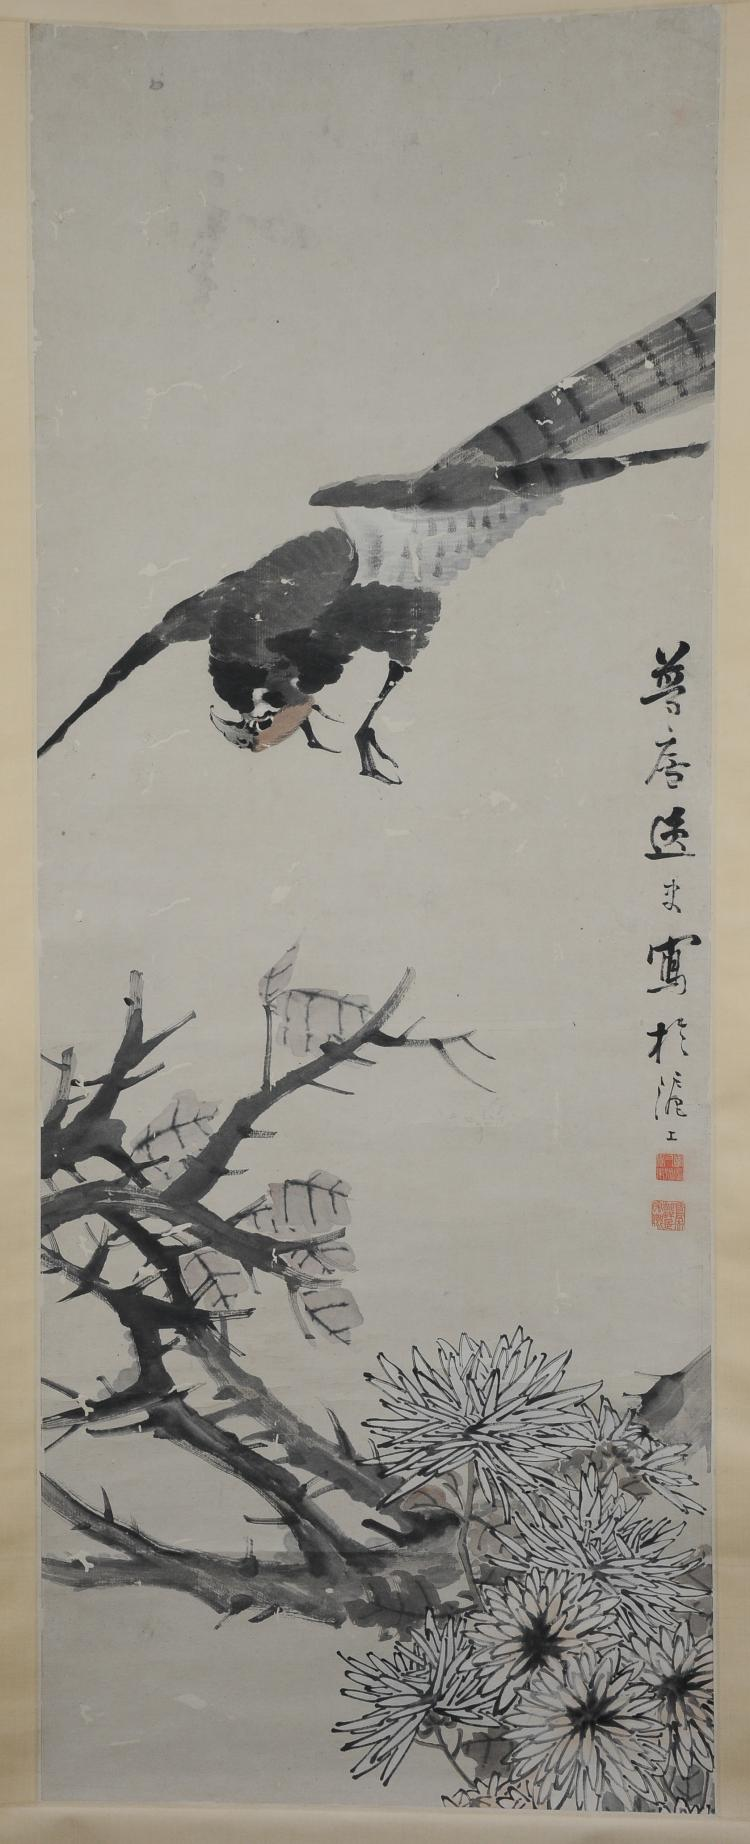 Flower & Bird Painting by Zhu Menglu (1826-1900)